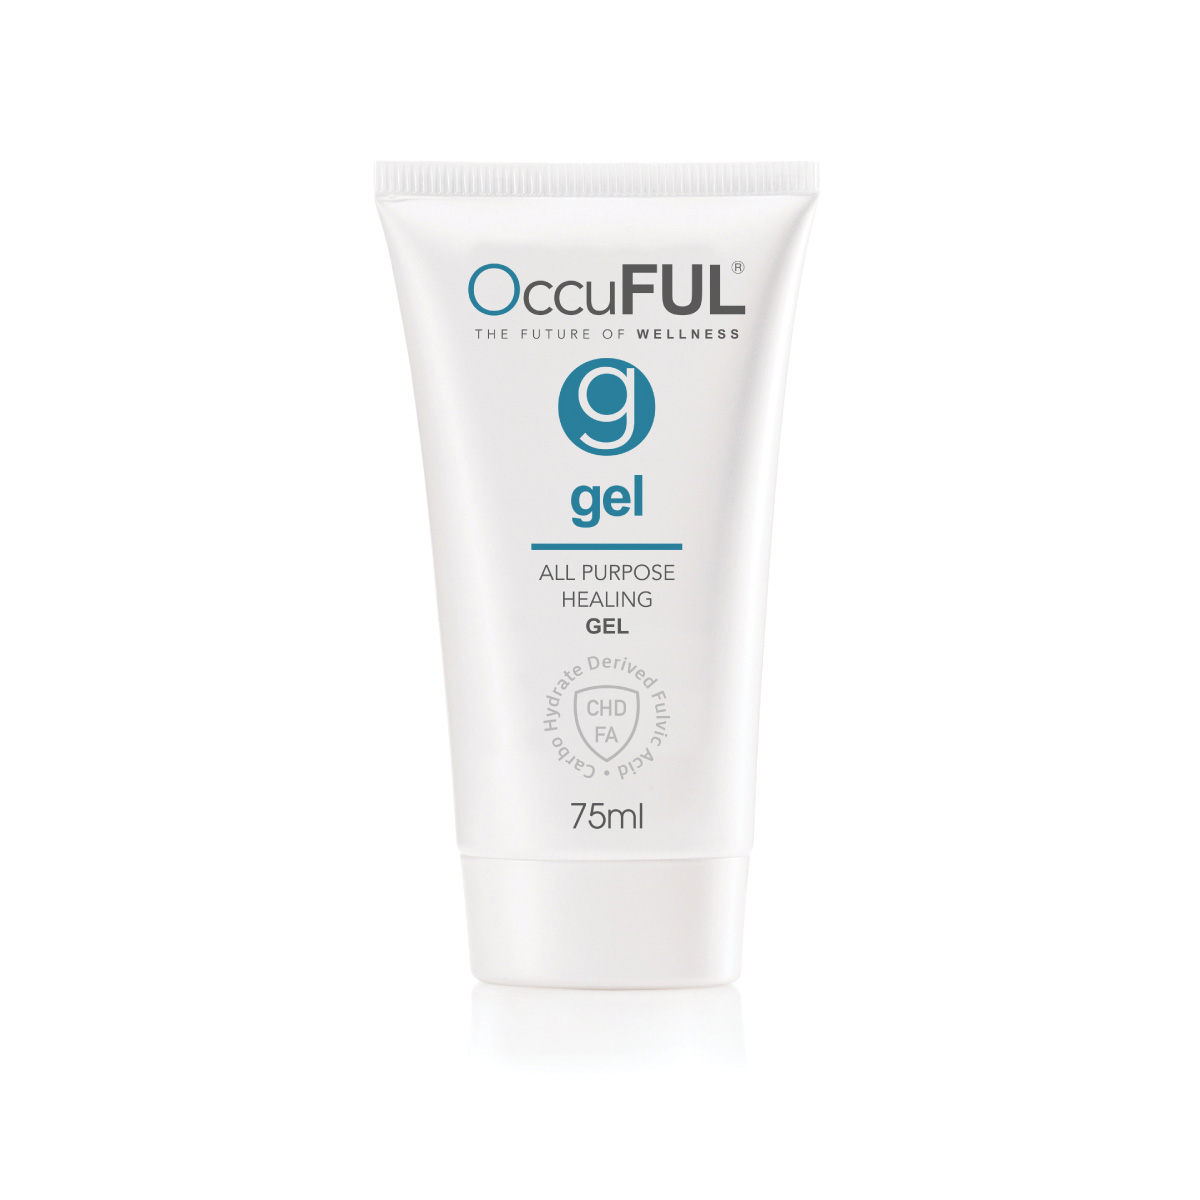 Occuful G Topical Gel - 75ml